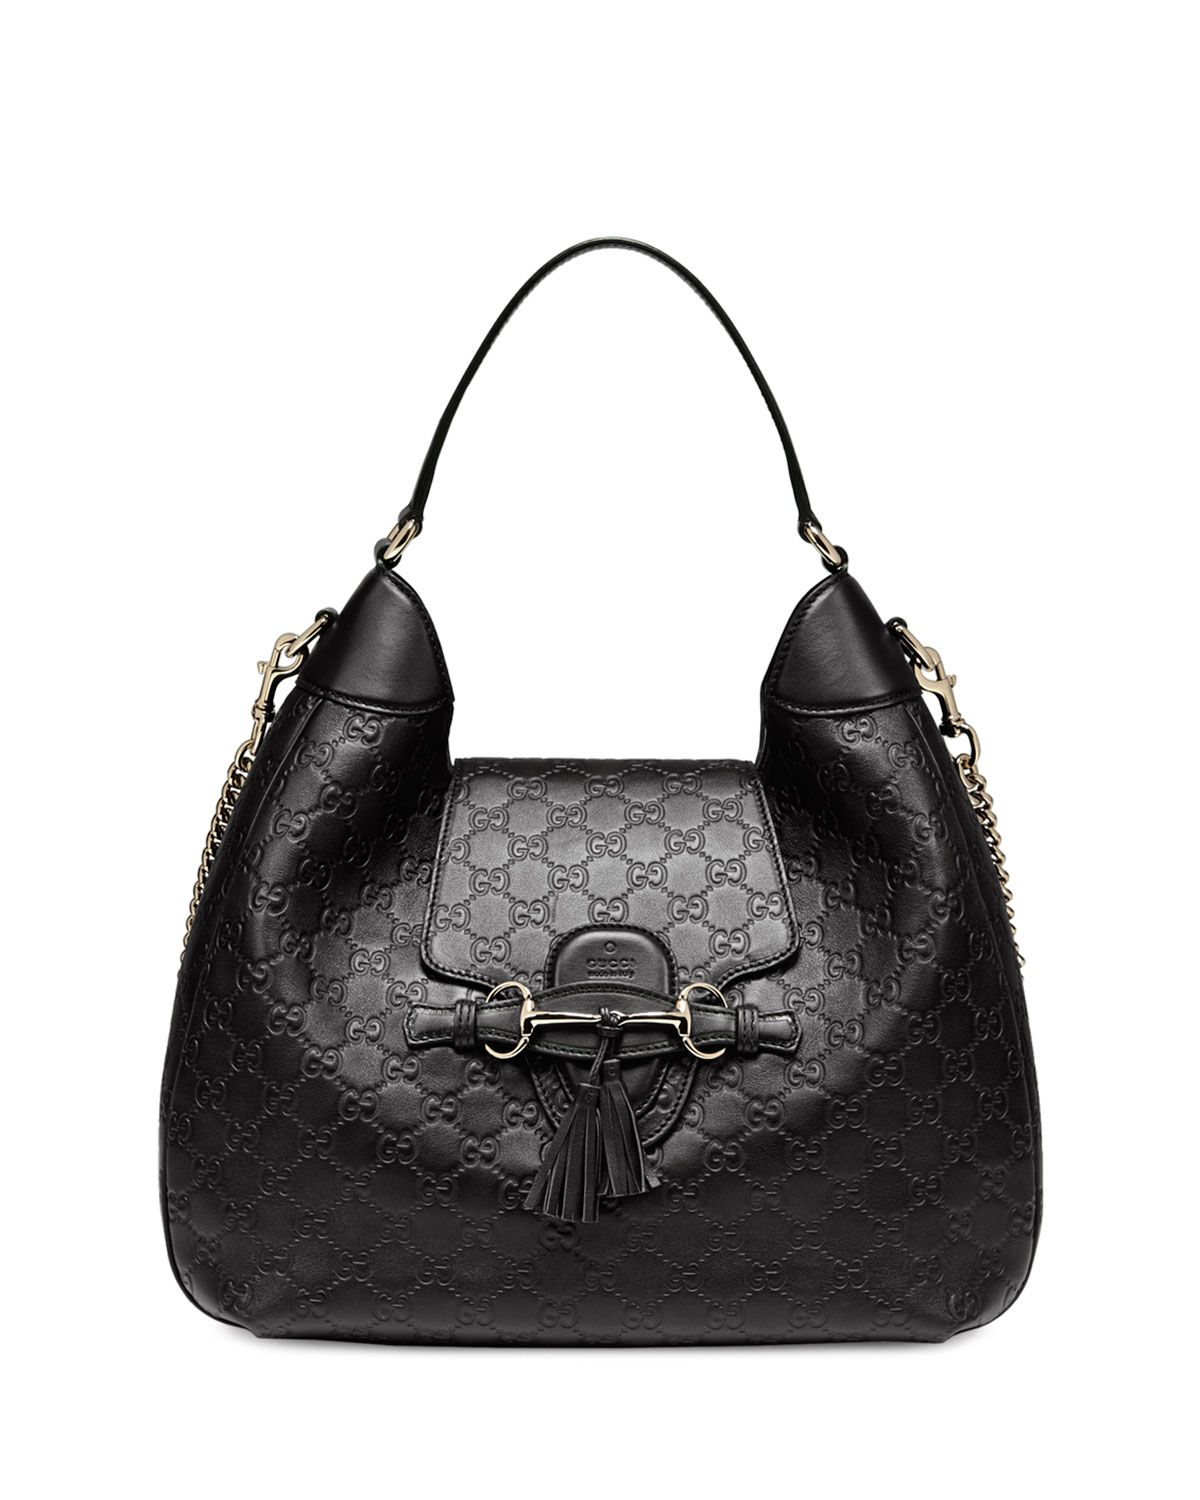 f7b0de956c6 Gucci Emily Guccissima Leather Hobo Bag